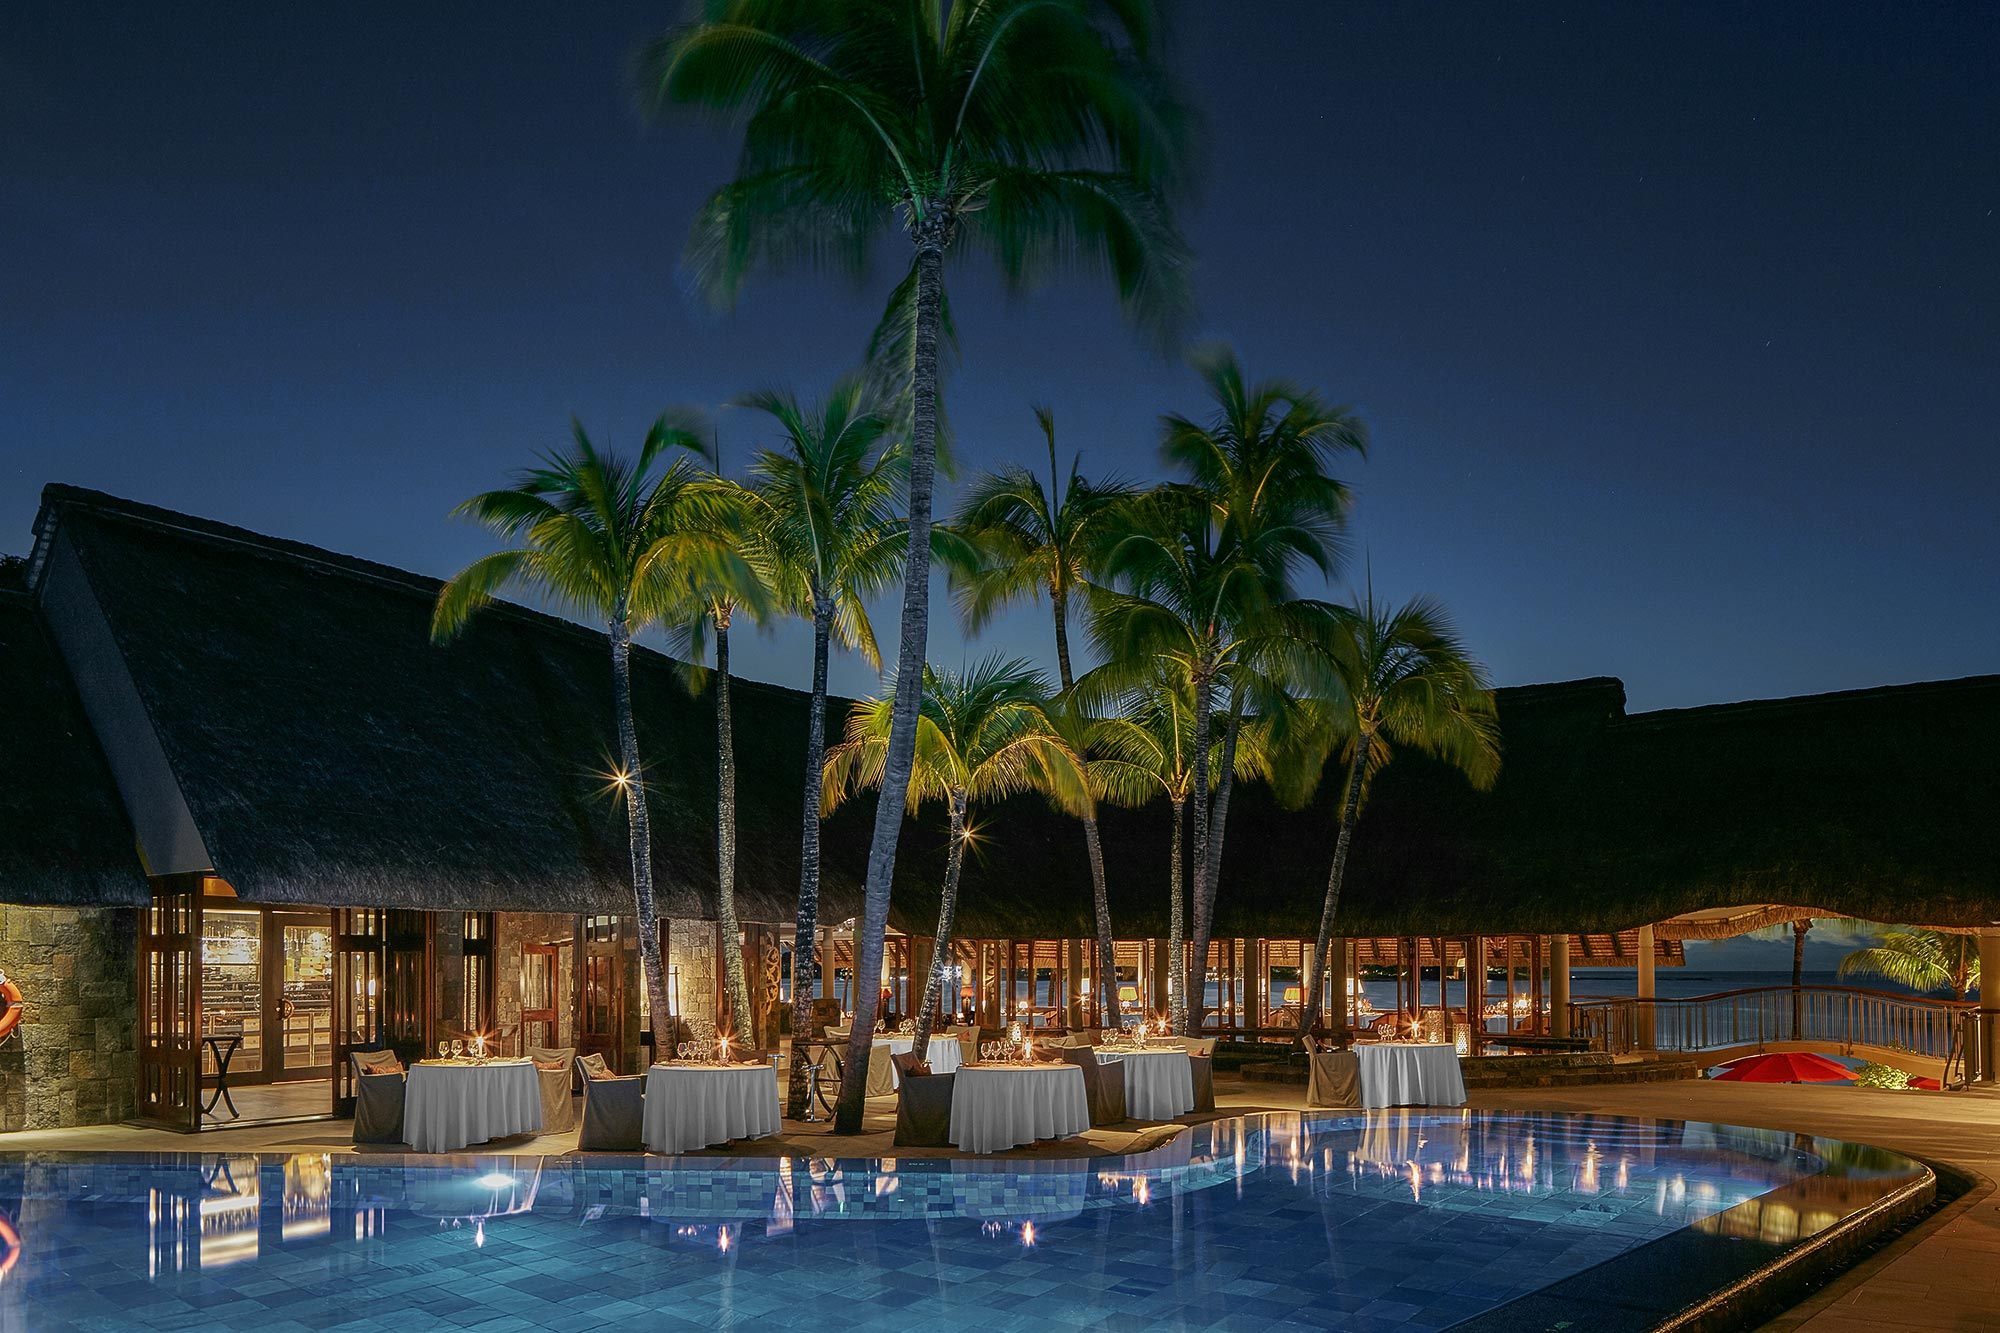 Luxury-Hotel-Restaurant-Photography-Adrian-Kilchherr-Switzerland-Mauritius